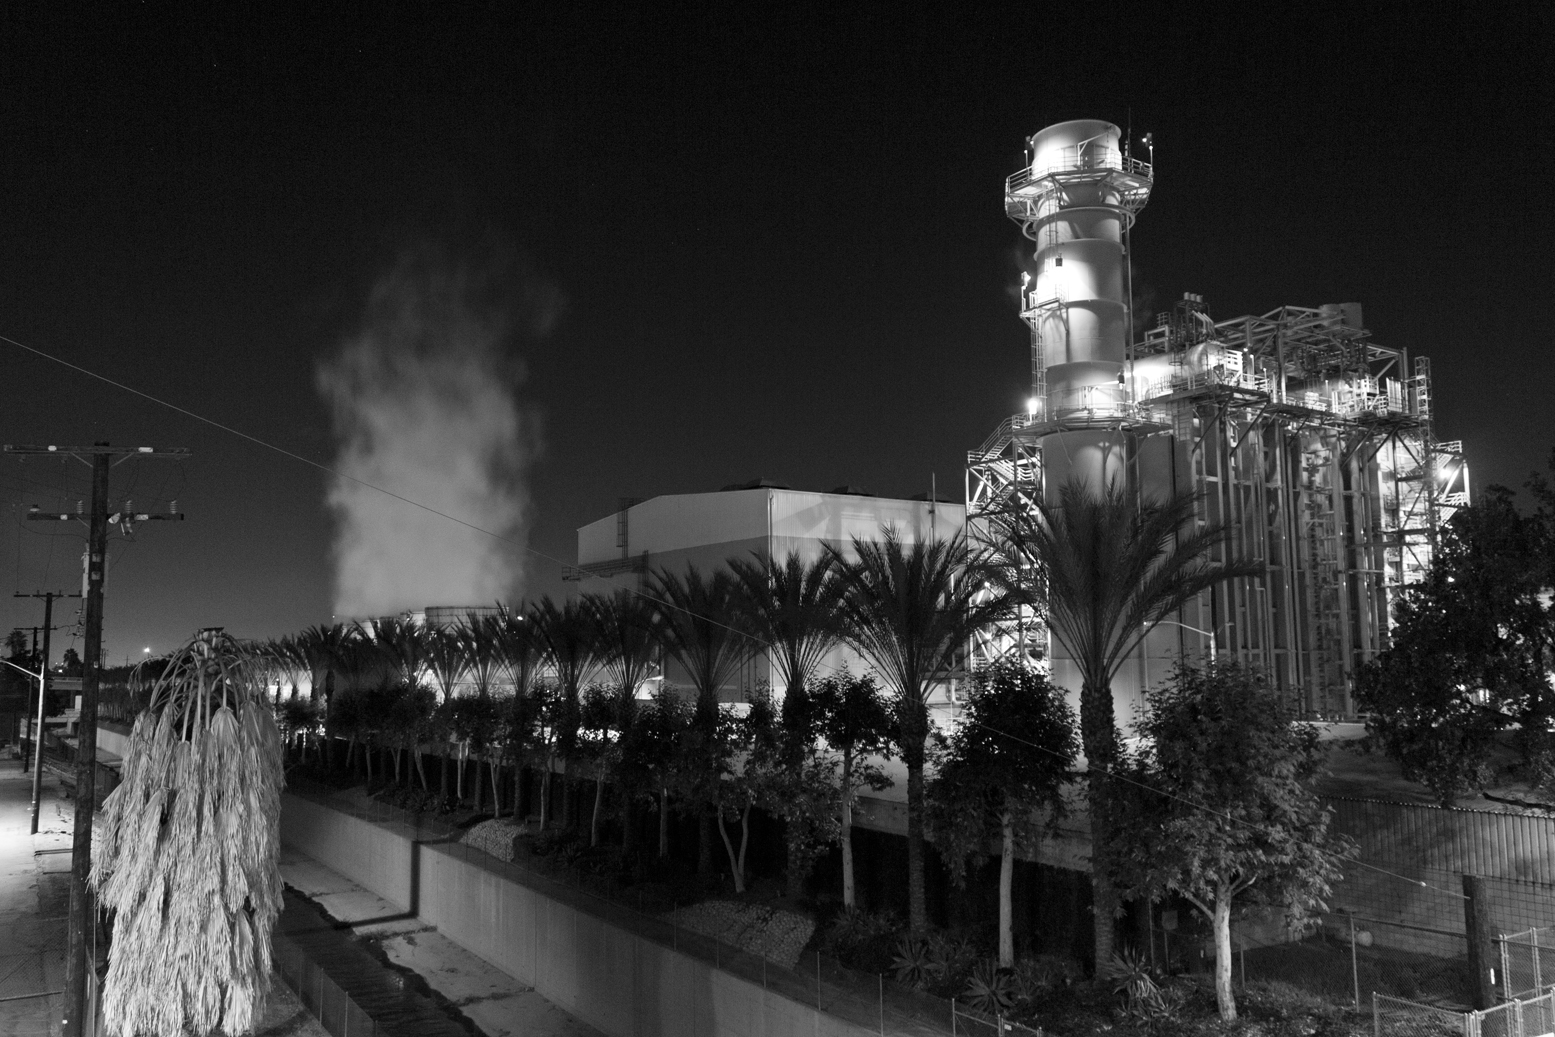 Burbank Power Plant